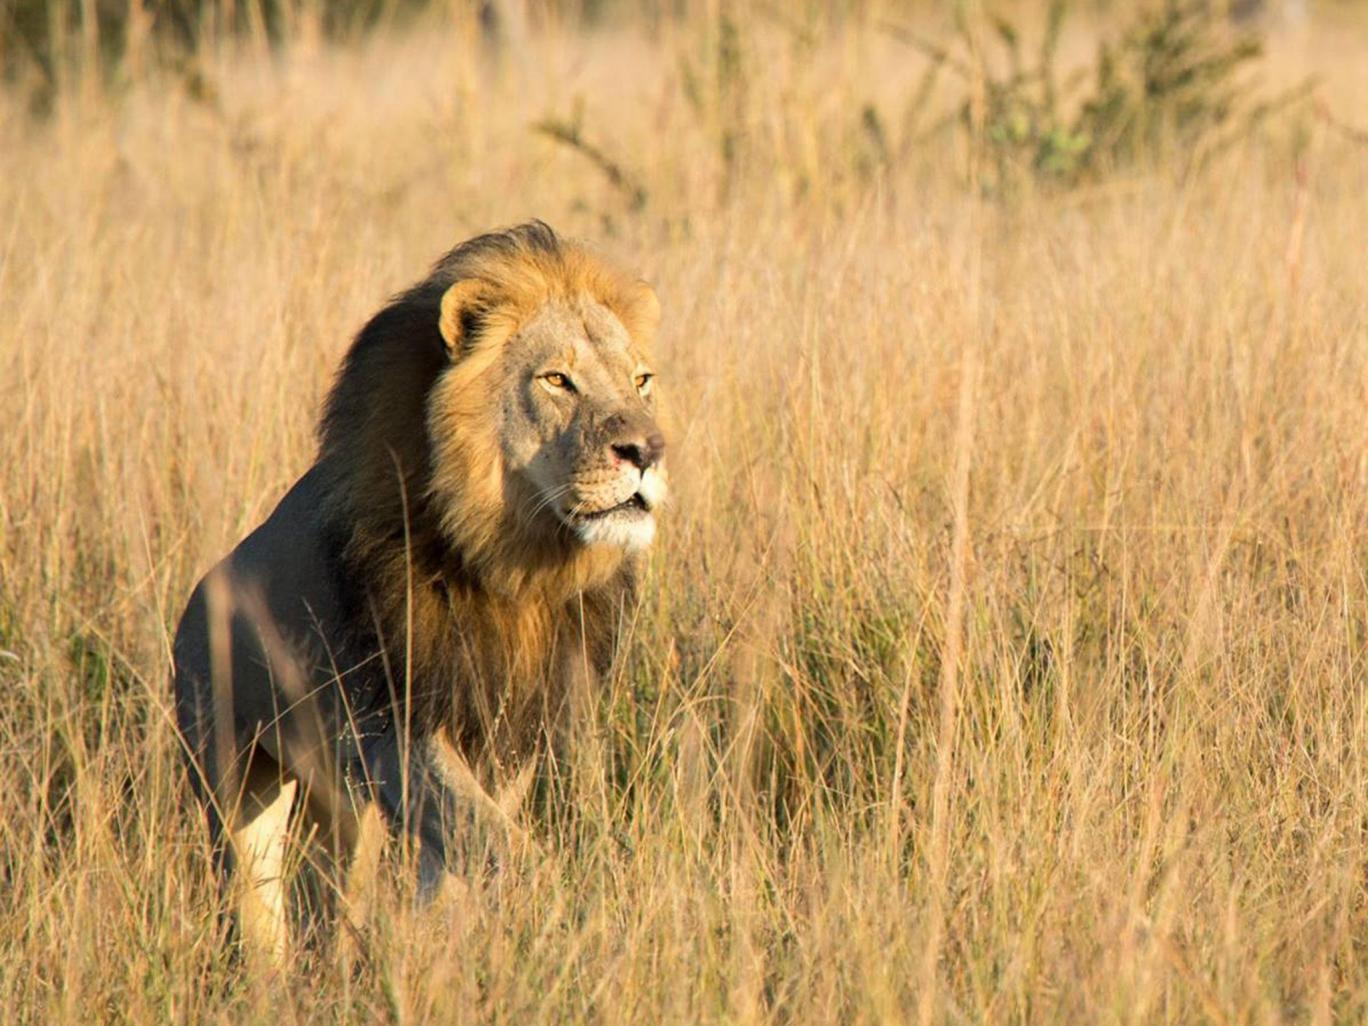 lion trophy hunting the death of xanda in zimbabwe conservation